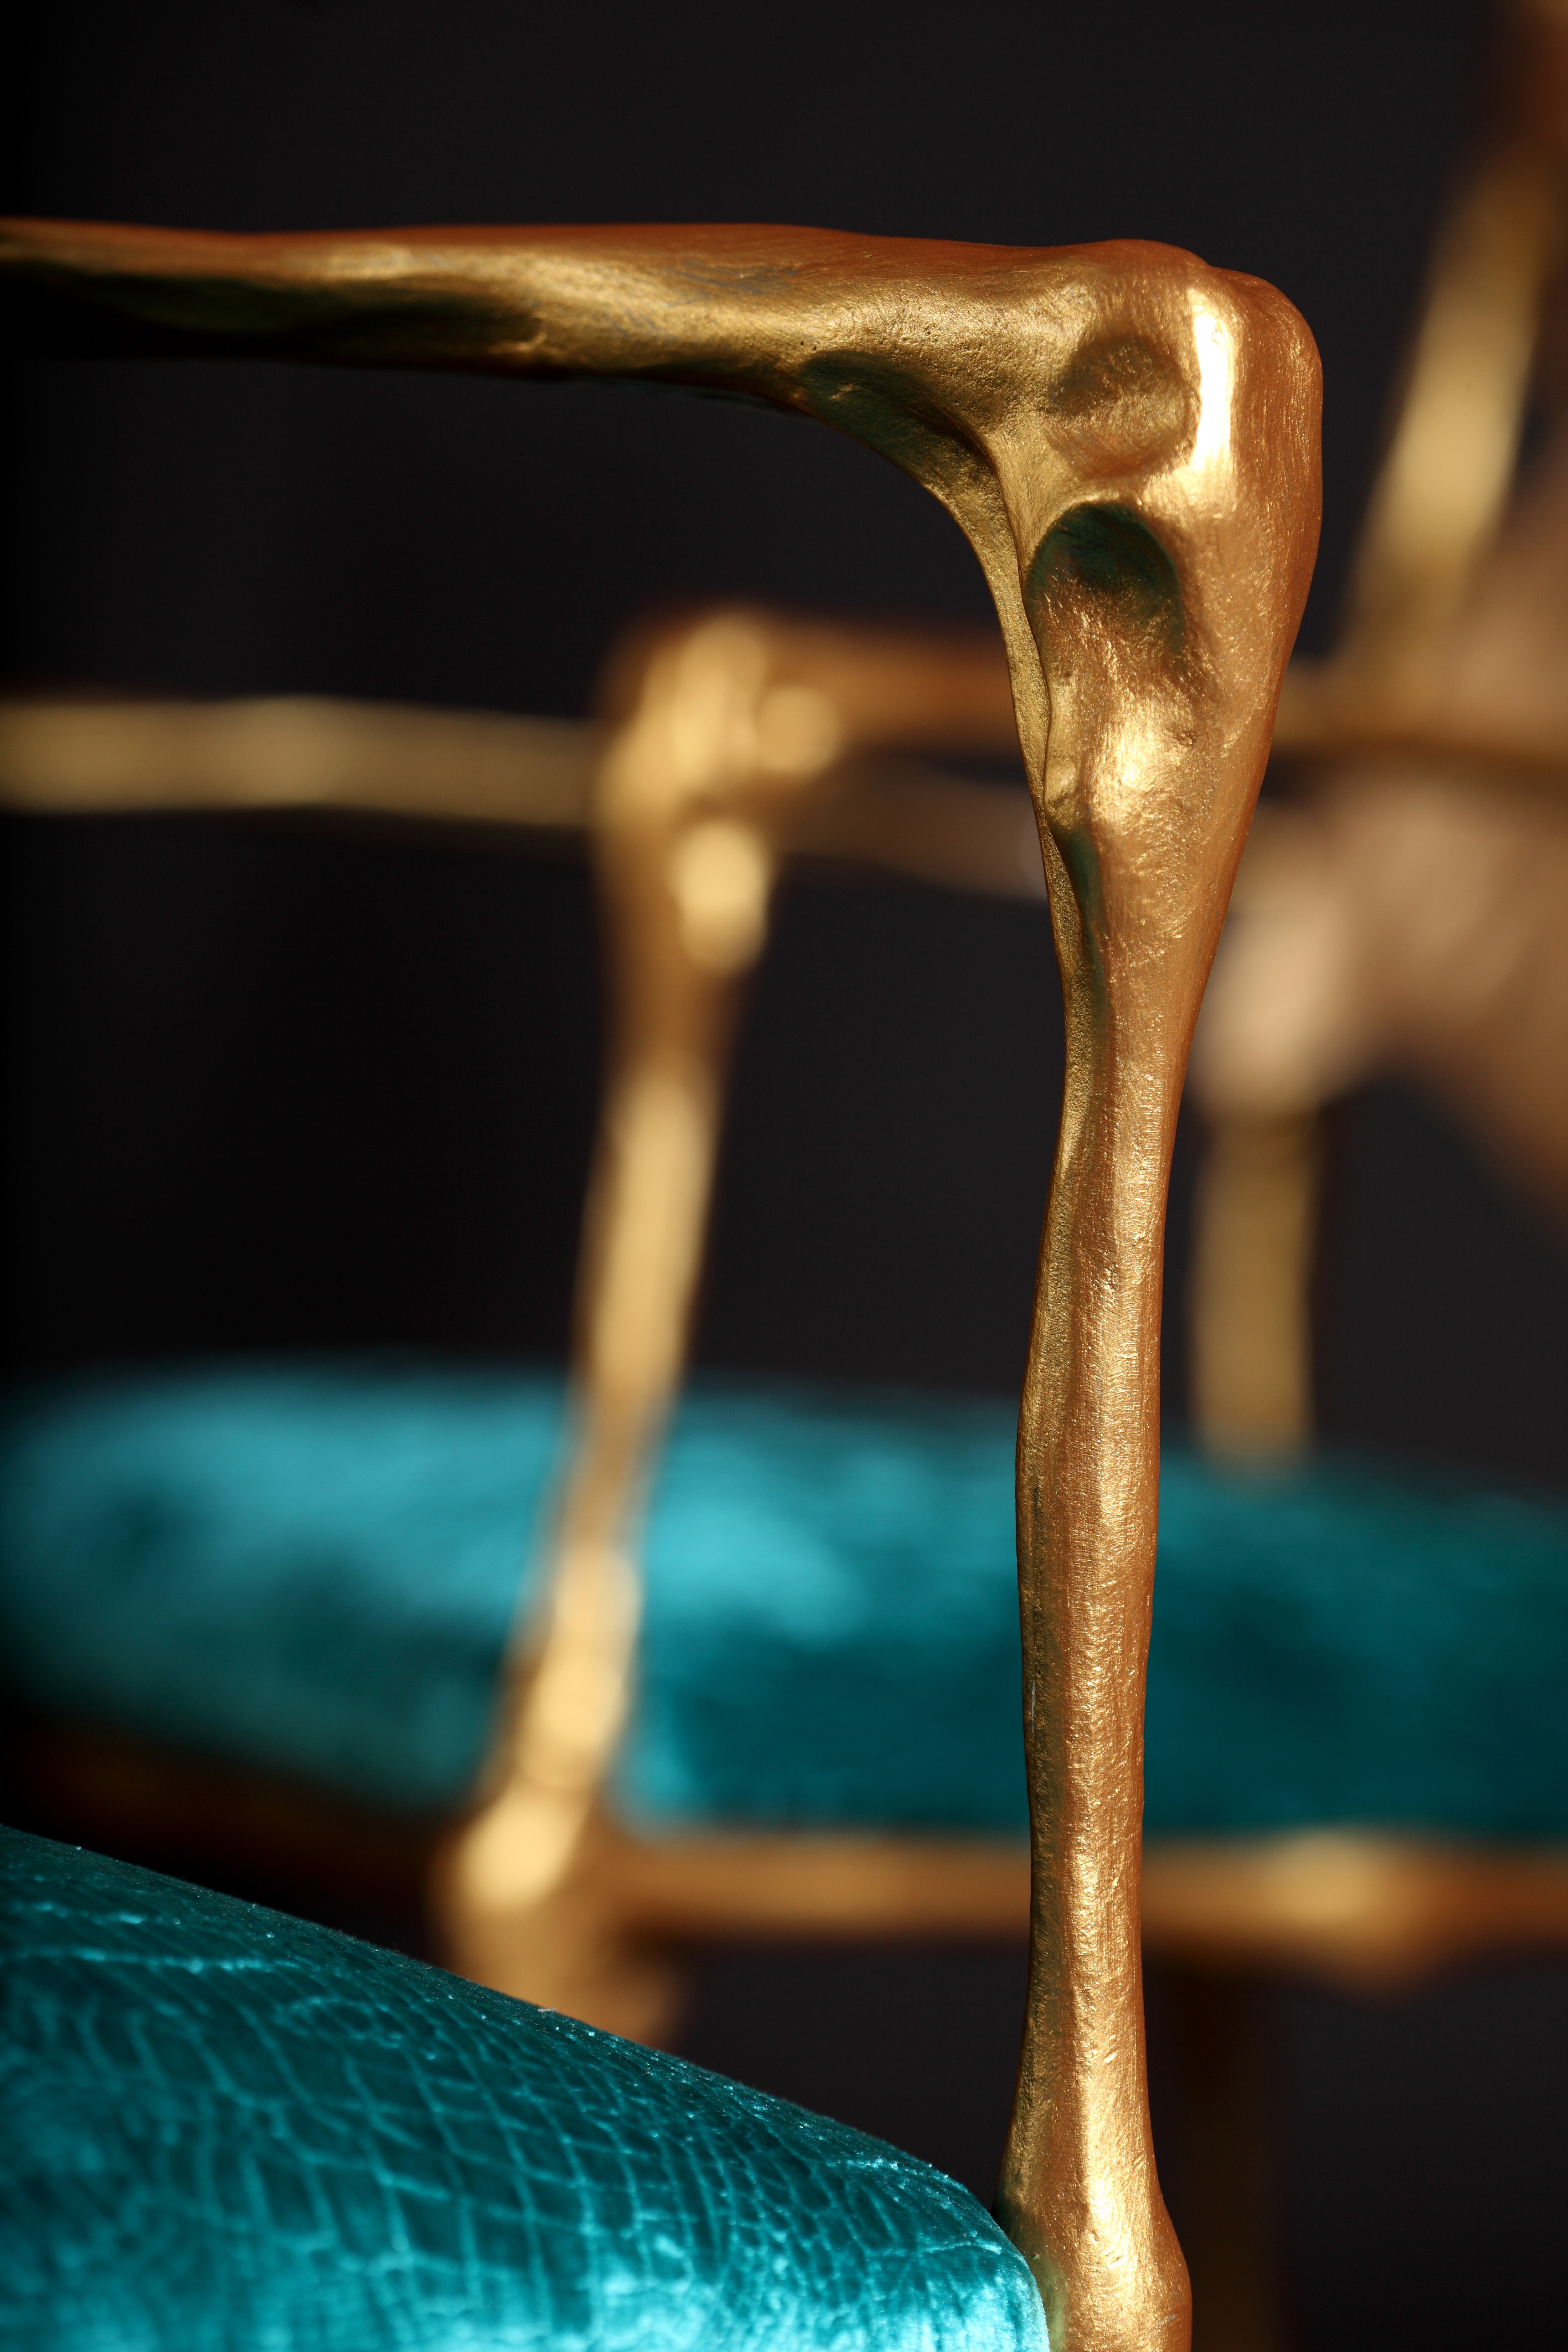 Dali-esq chair with hand sculpted arms in bronze and velvet teal cushion